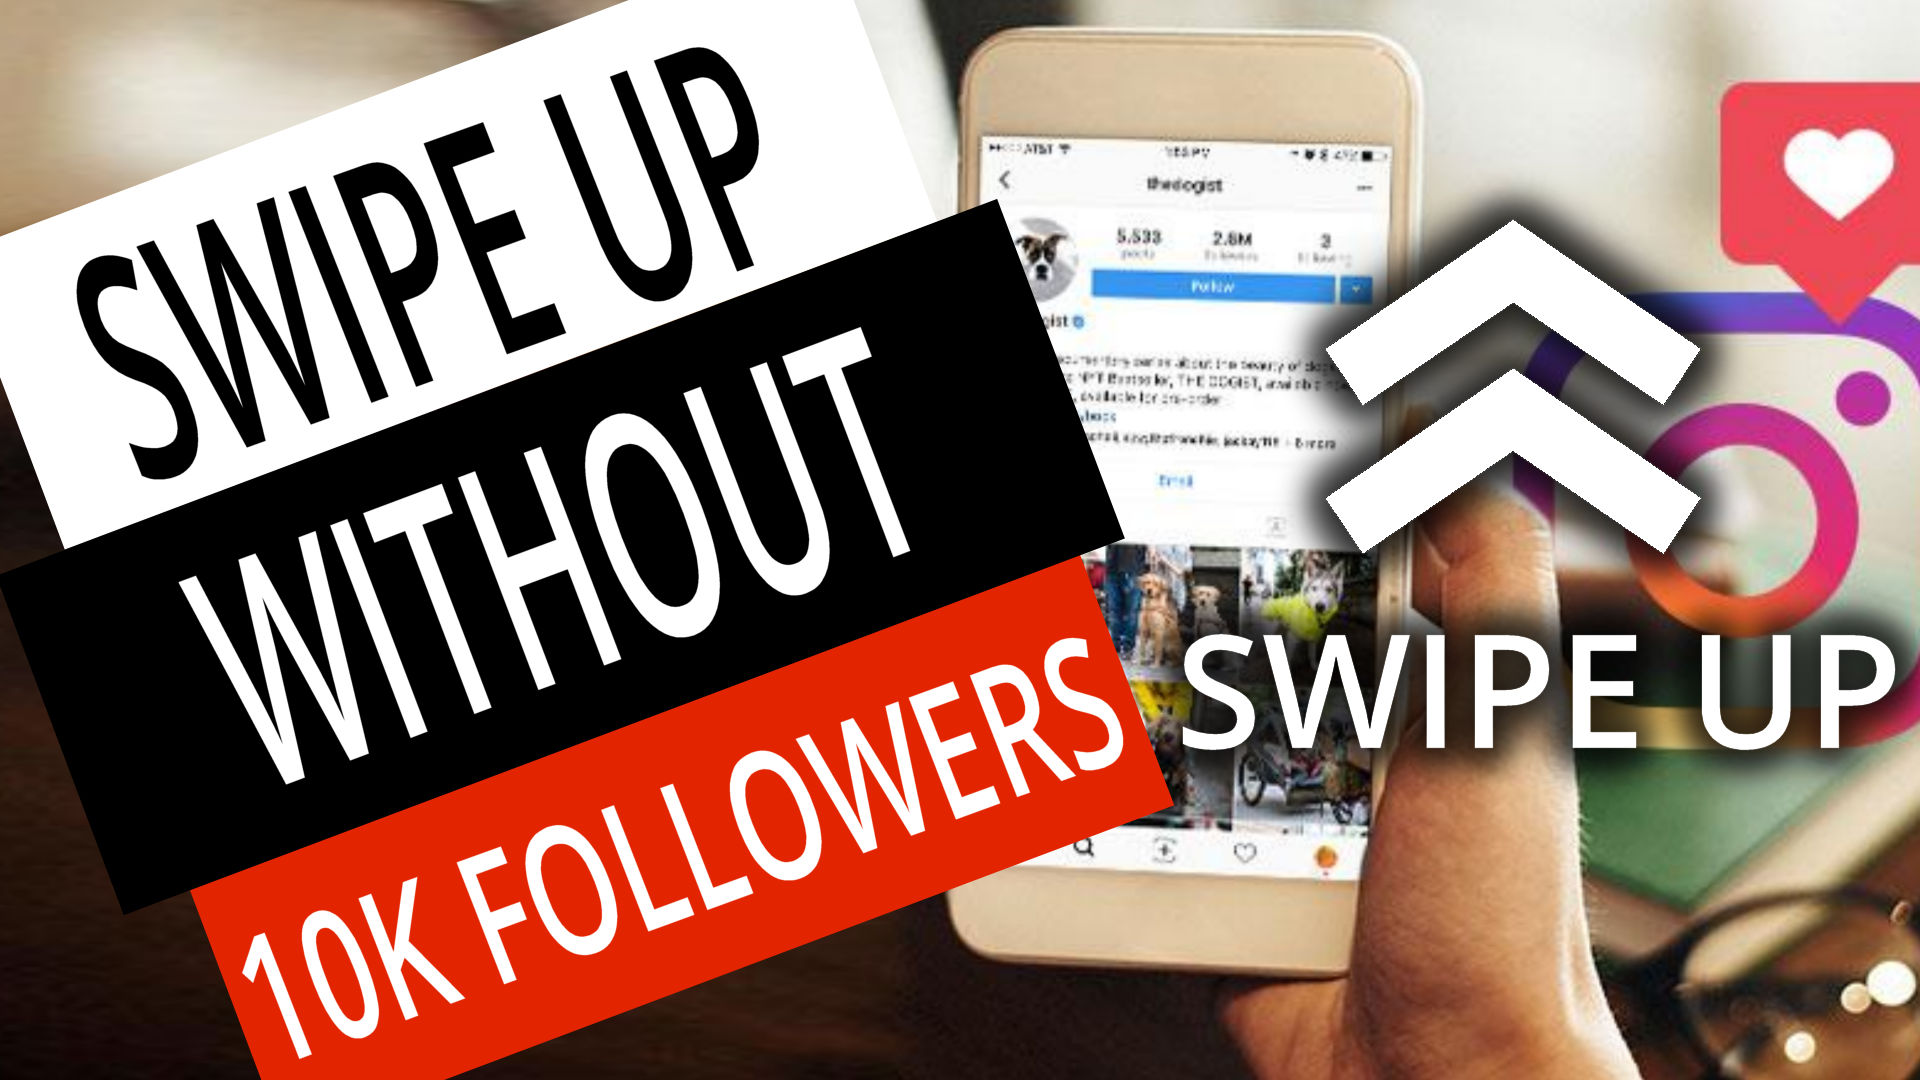 Get Instagram SWIPE UP Feature WITHOUT 10K Followers (4 QUICK STEPS), alan spicer,alanspicer,how to get the swipe up feature on instagram,how to get swipe up on instagram story without 10k followers,swipe up instagram story without 10k followers,how to get the swipe up feature,how to get swipe up on instagram without 10k followers,instagram swipe up feature,swipe up instagram story,swipe up on instagram,swipe up without 10k followers,swipe up hack,swipe up with igt,swipe up instagram,10k instagram swipe up hack,instagram swipe up hack